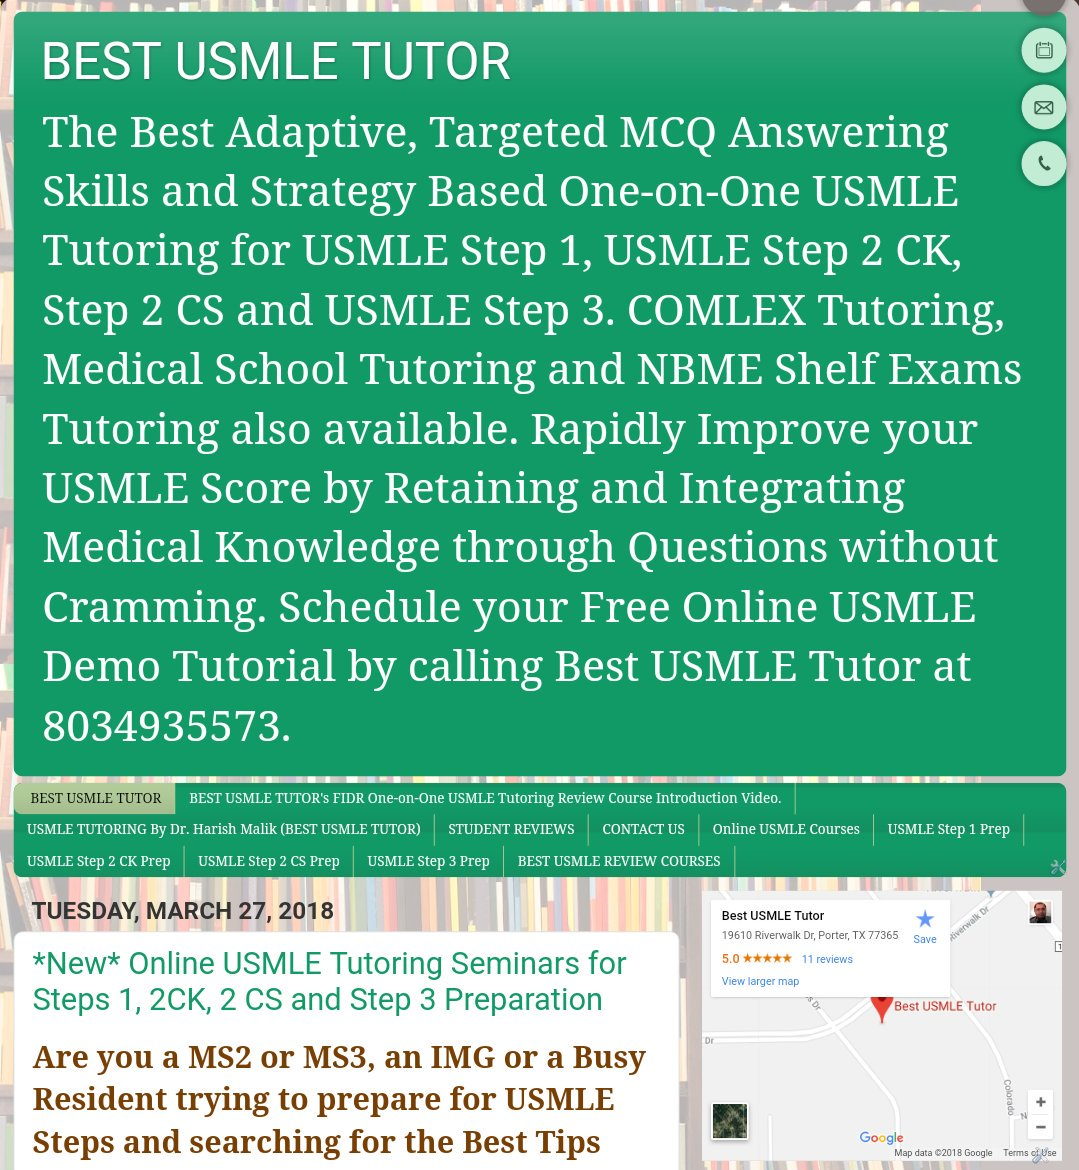 The ideal strategy for USMLE preparation for step 1 step 2 CK CS